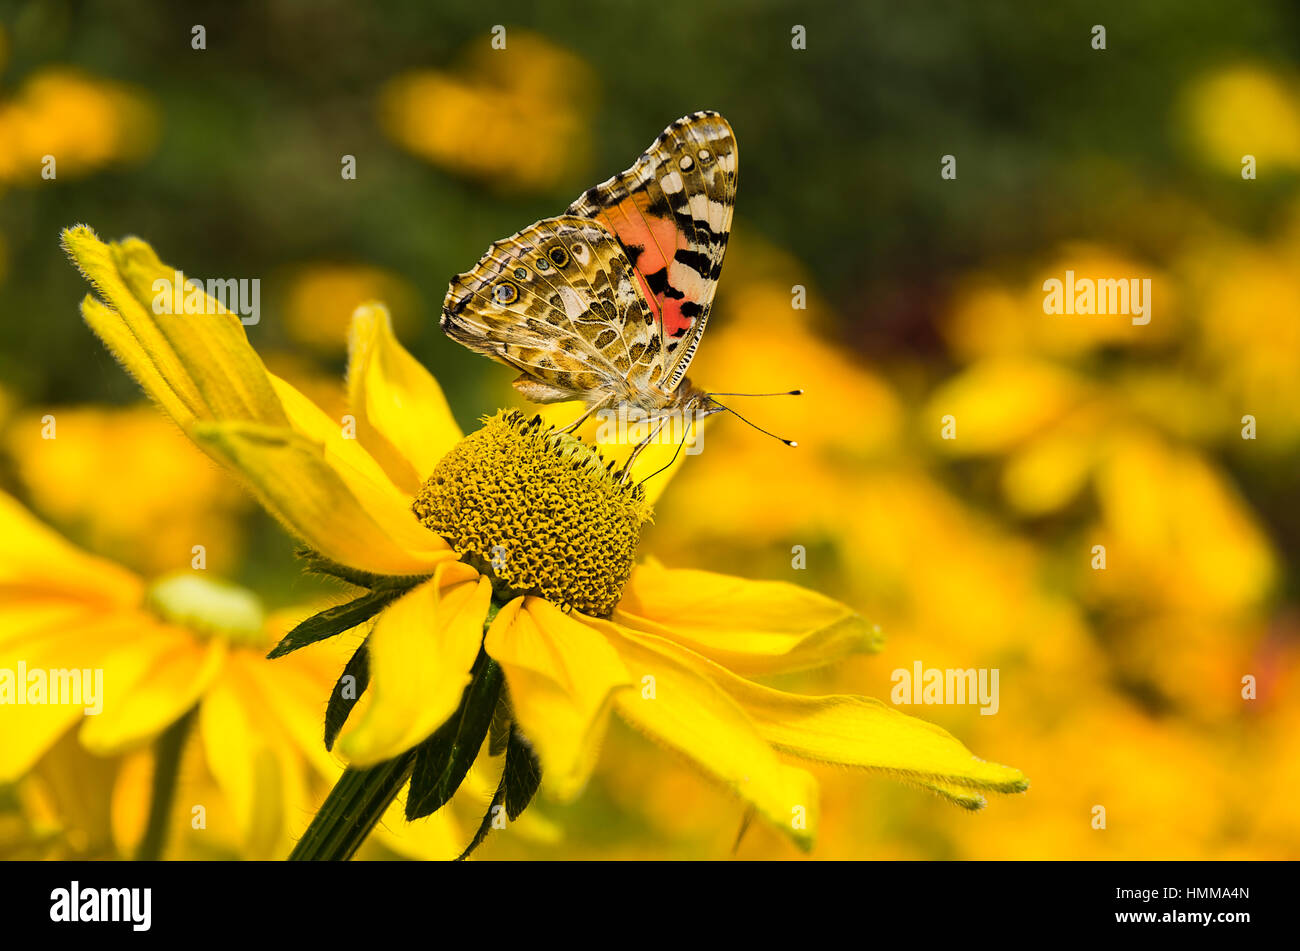 A Painted Lady butterfly (Vanessa cardui) from the family of the Nymphalidae on a yellow zinnia. - Stock Image